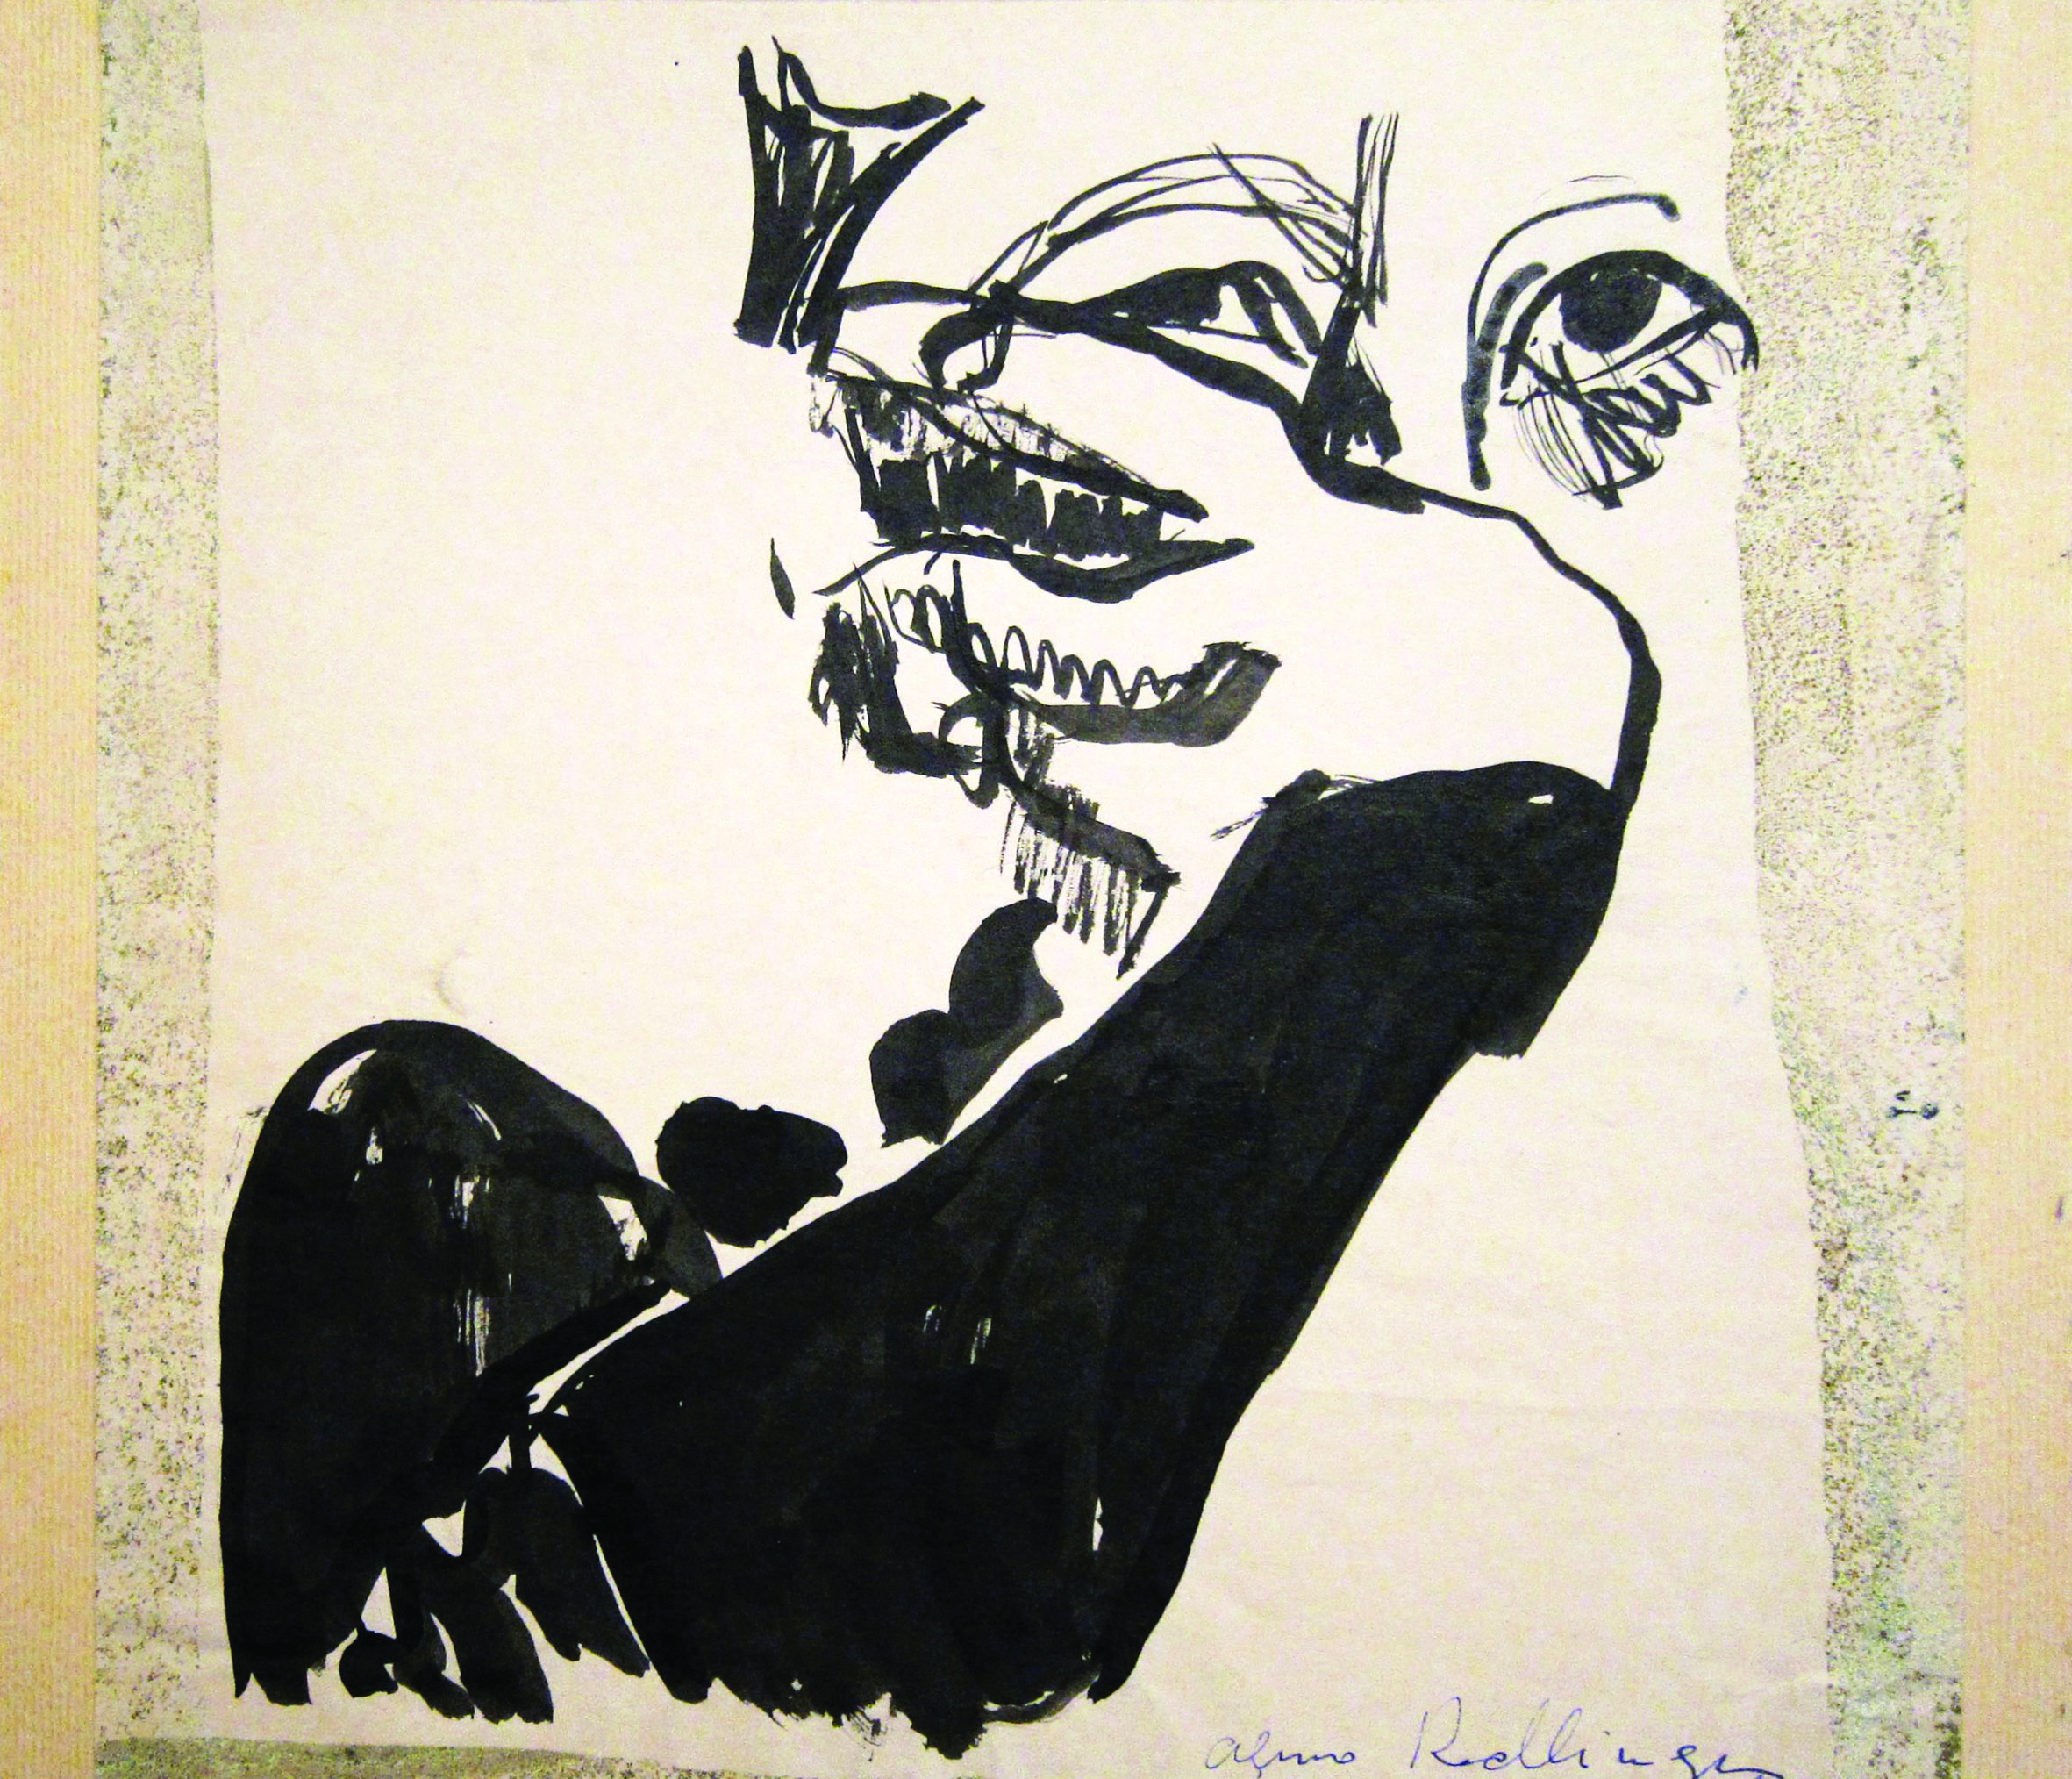 Self-portrait, 1978, ink, 20X20 cm